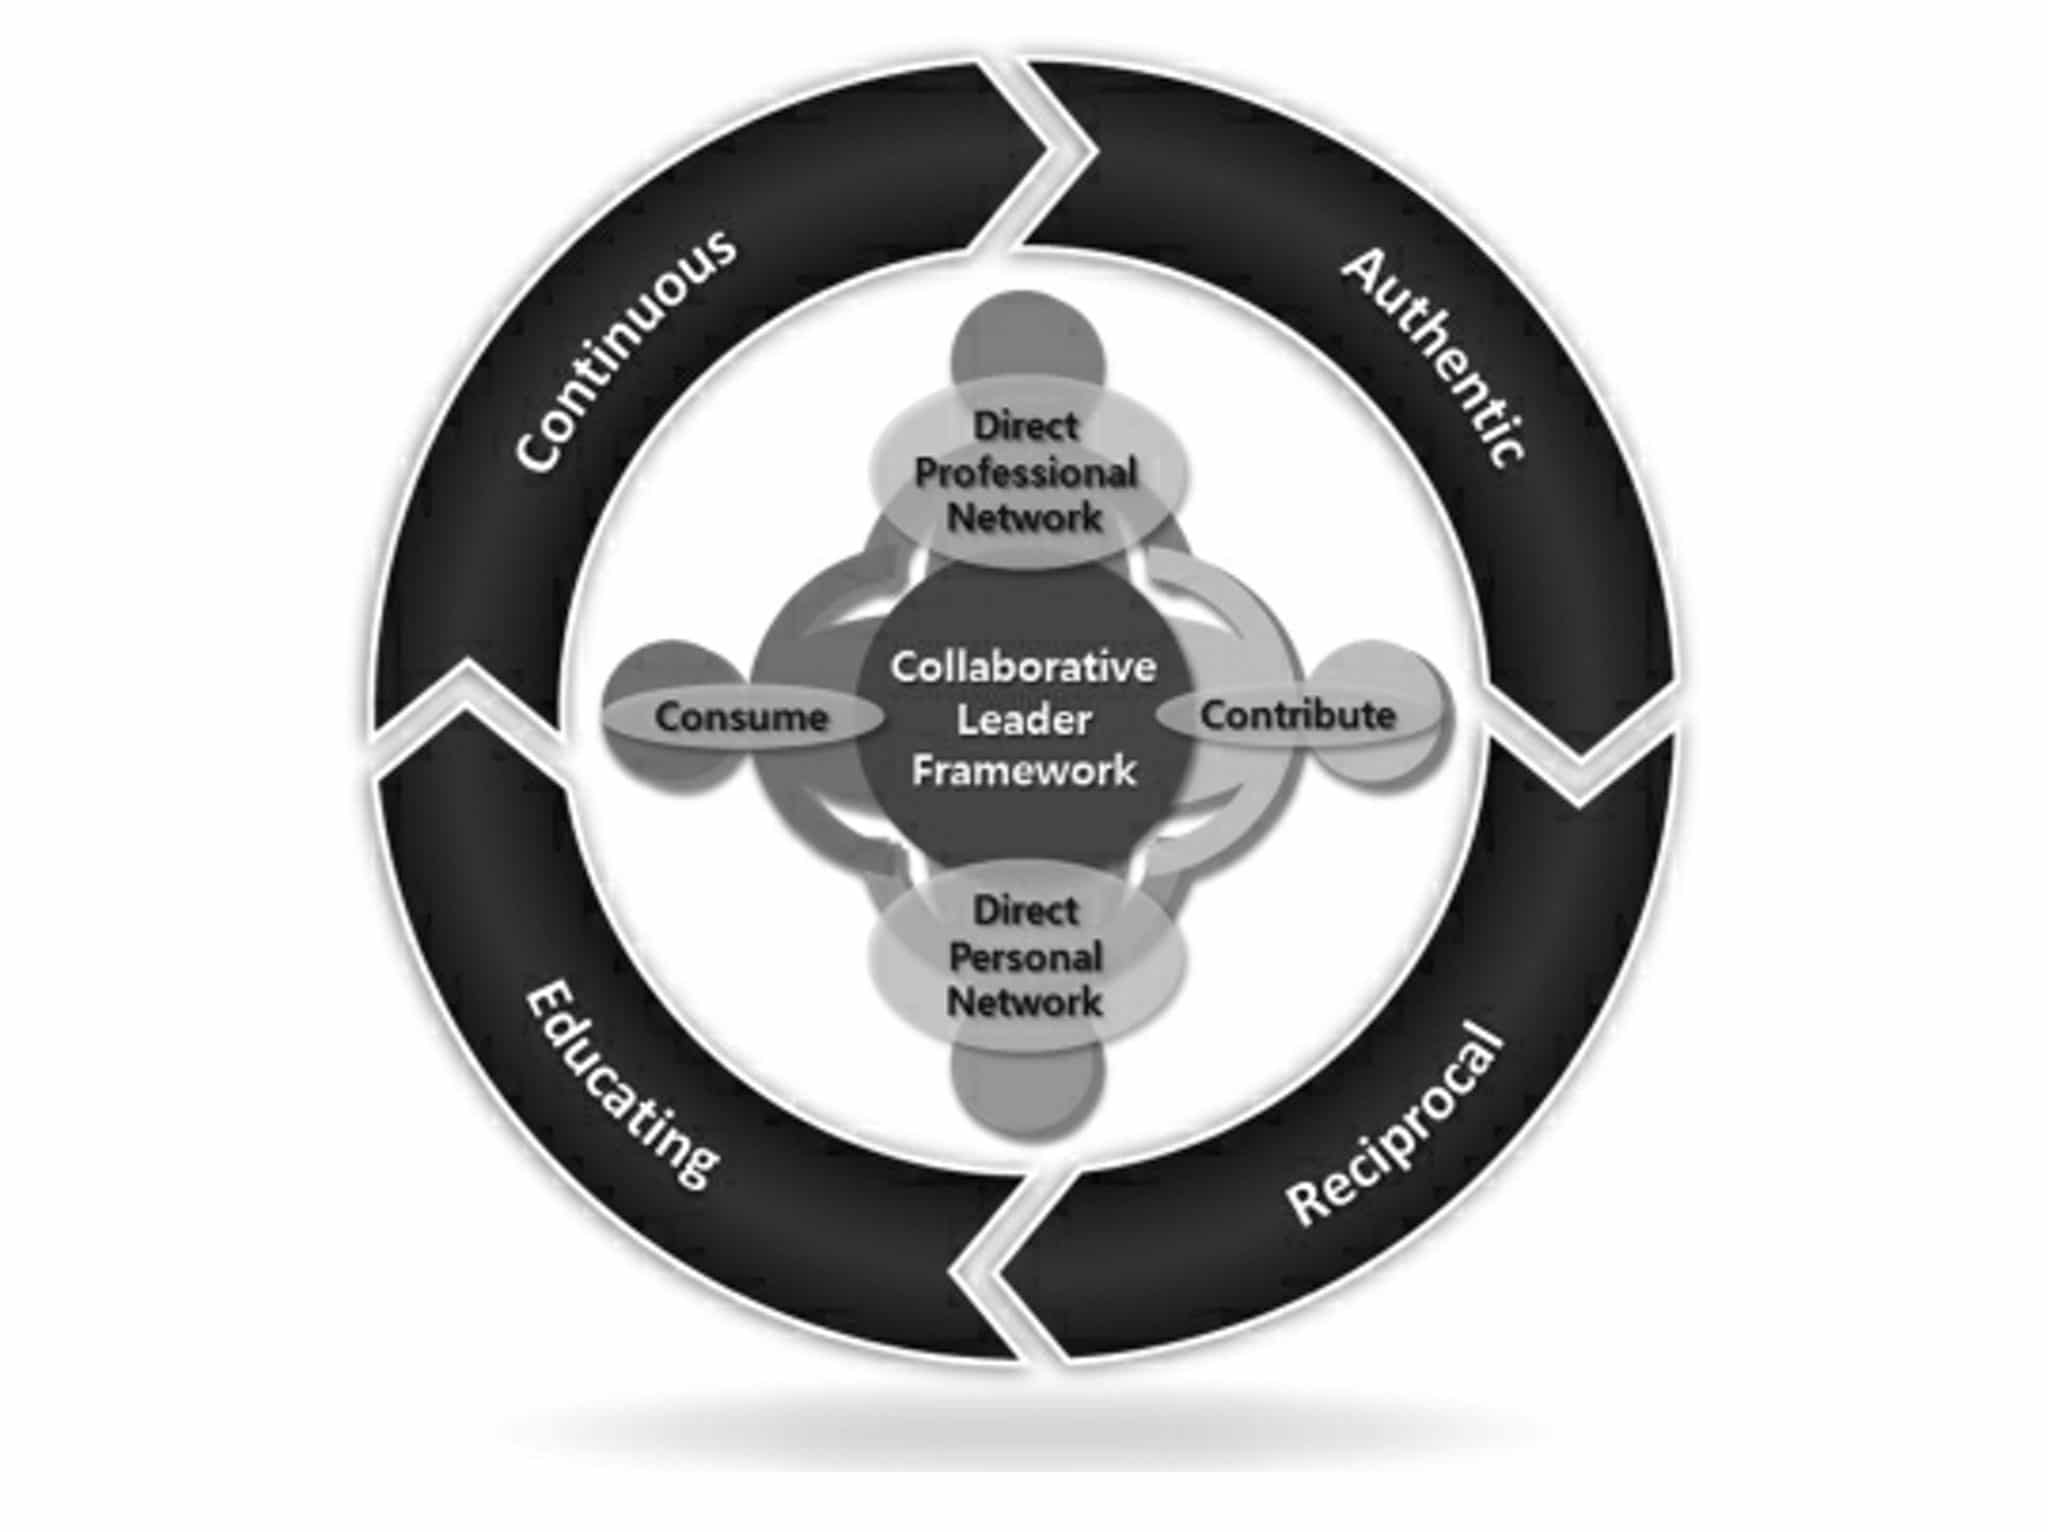 Fig. 3: The Participative Leader Framework. Source: Dan Pontefract, Flat Army